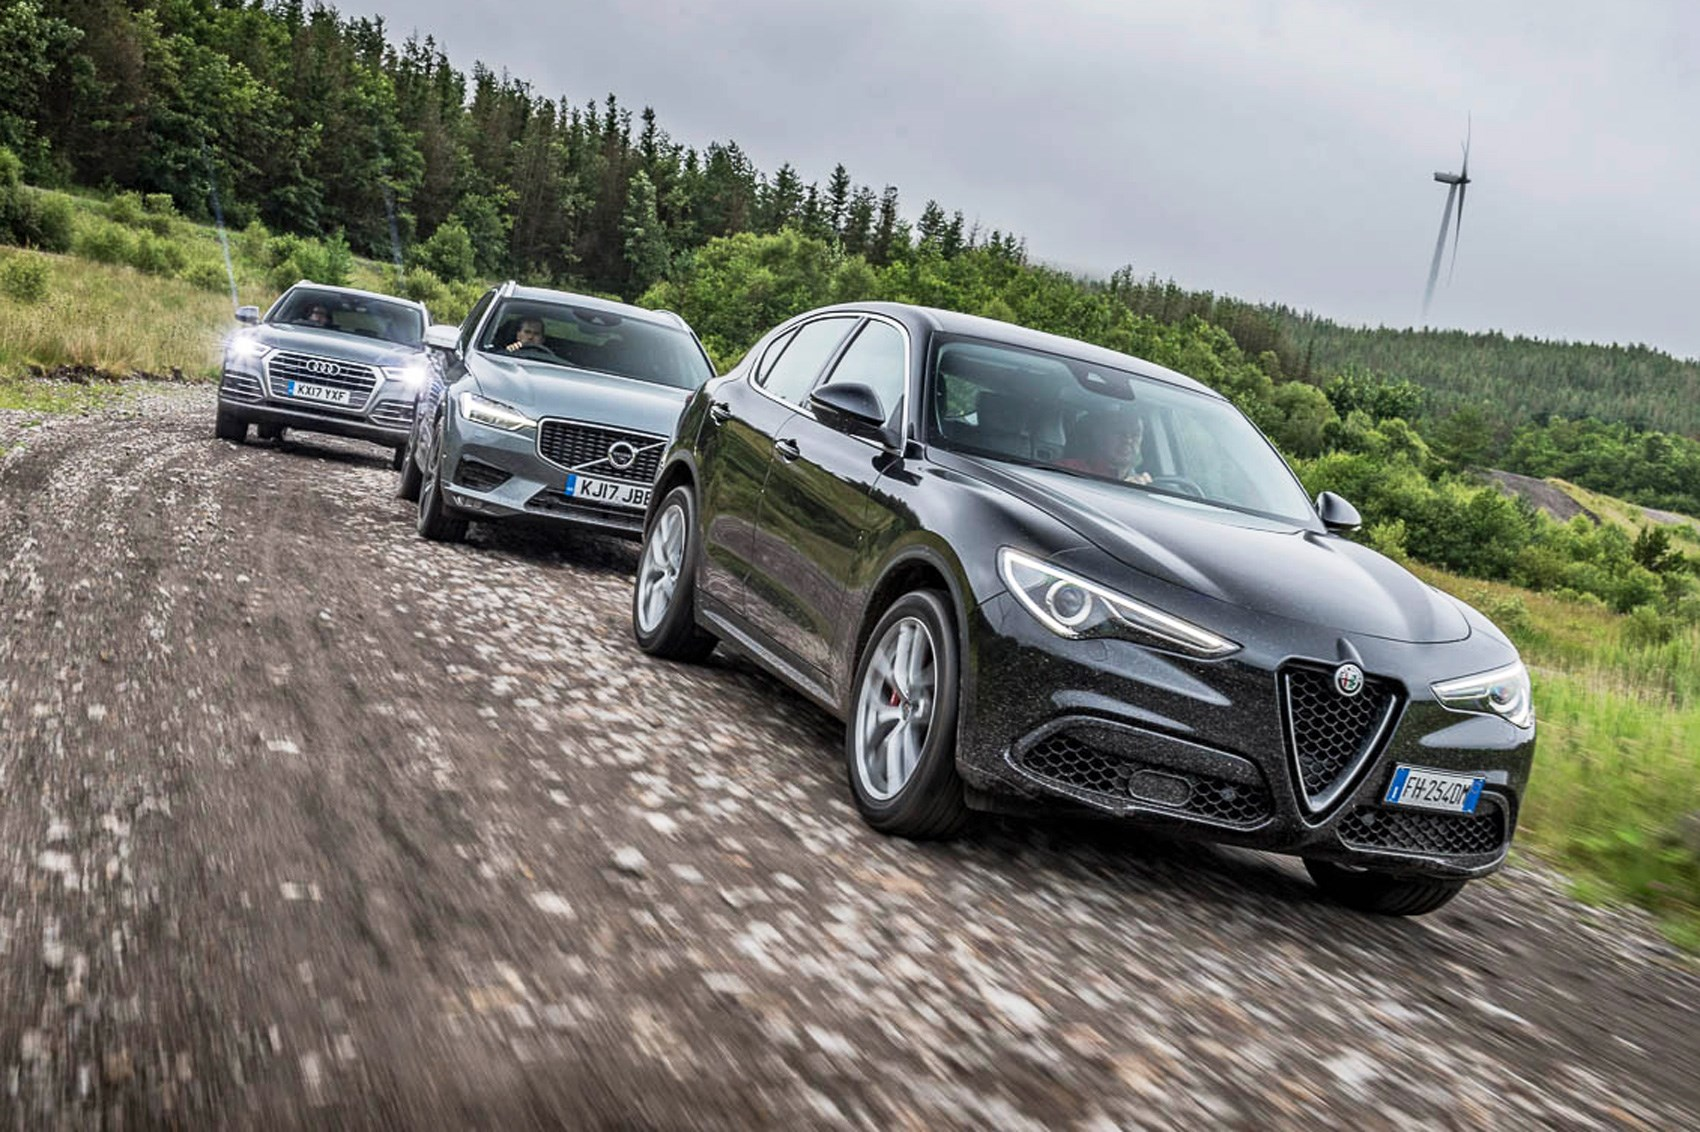 alfa romeo stelvio vs volvo xc60 vs audi q5 triple test review